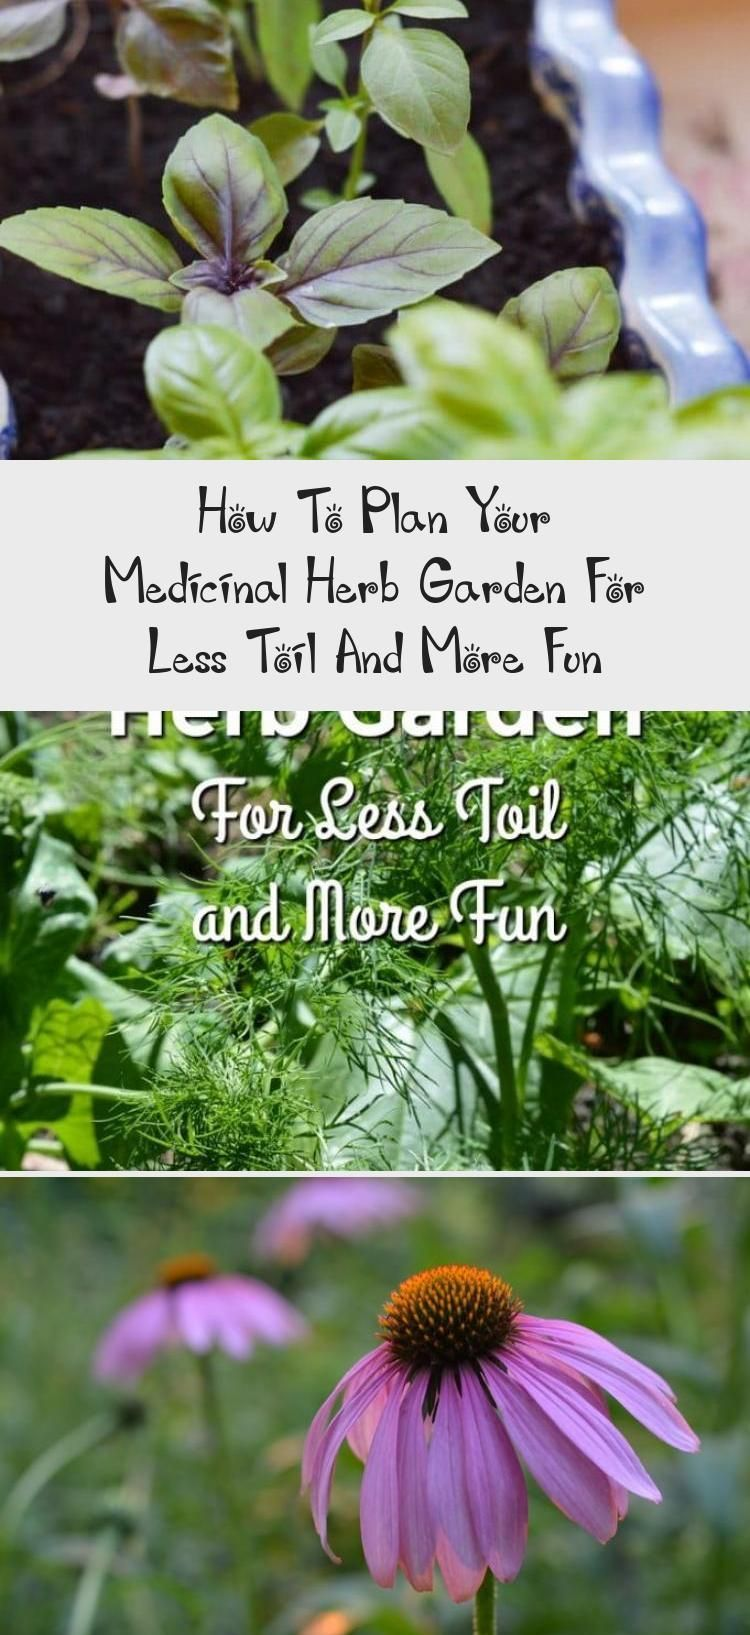 How To Plan Your Medicinal Herb Garden For Less Toil And More Fun  Gardenfun